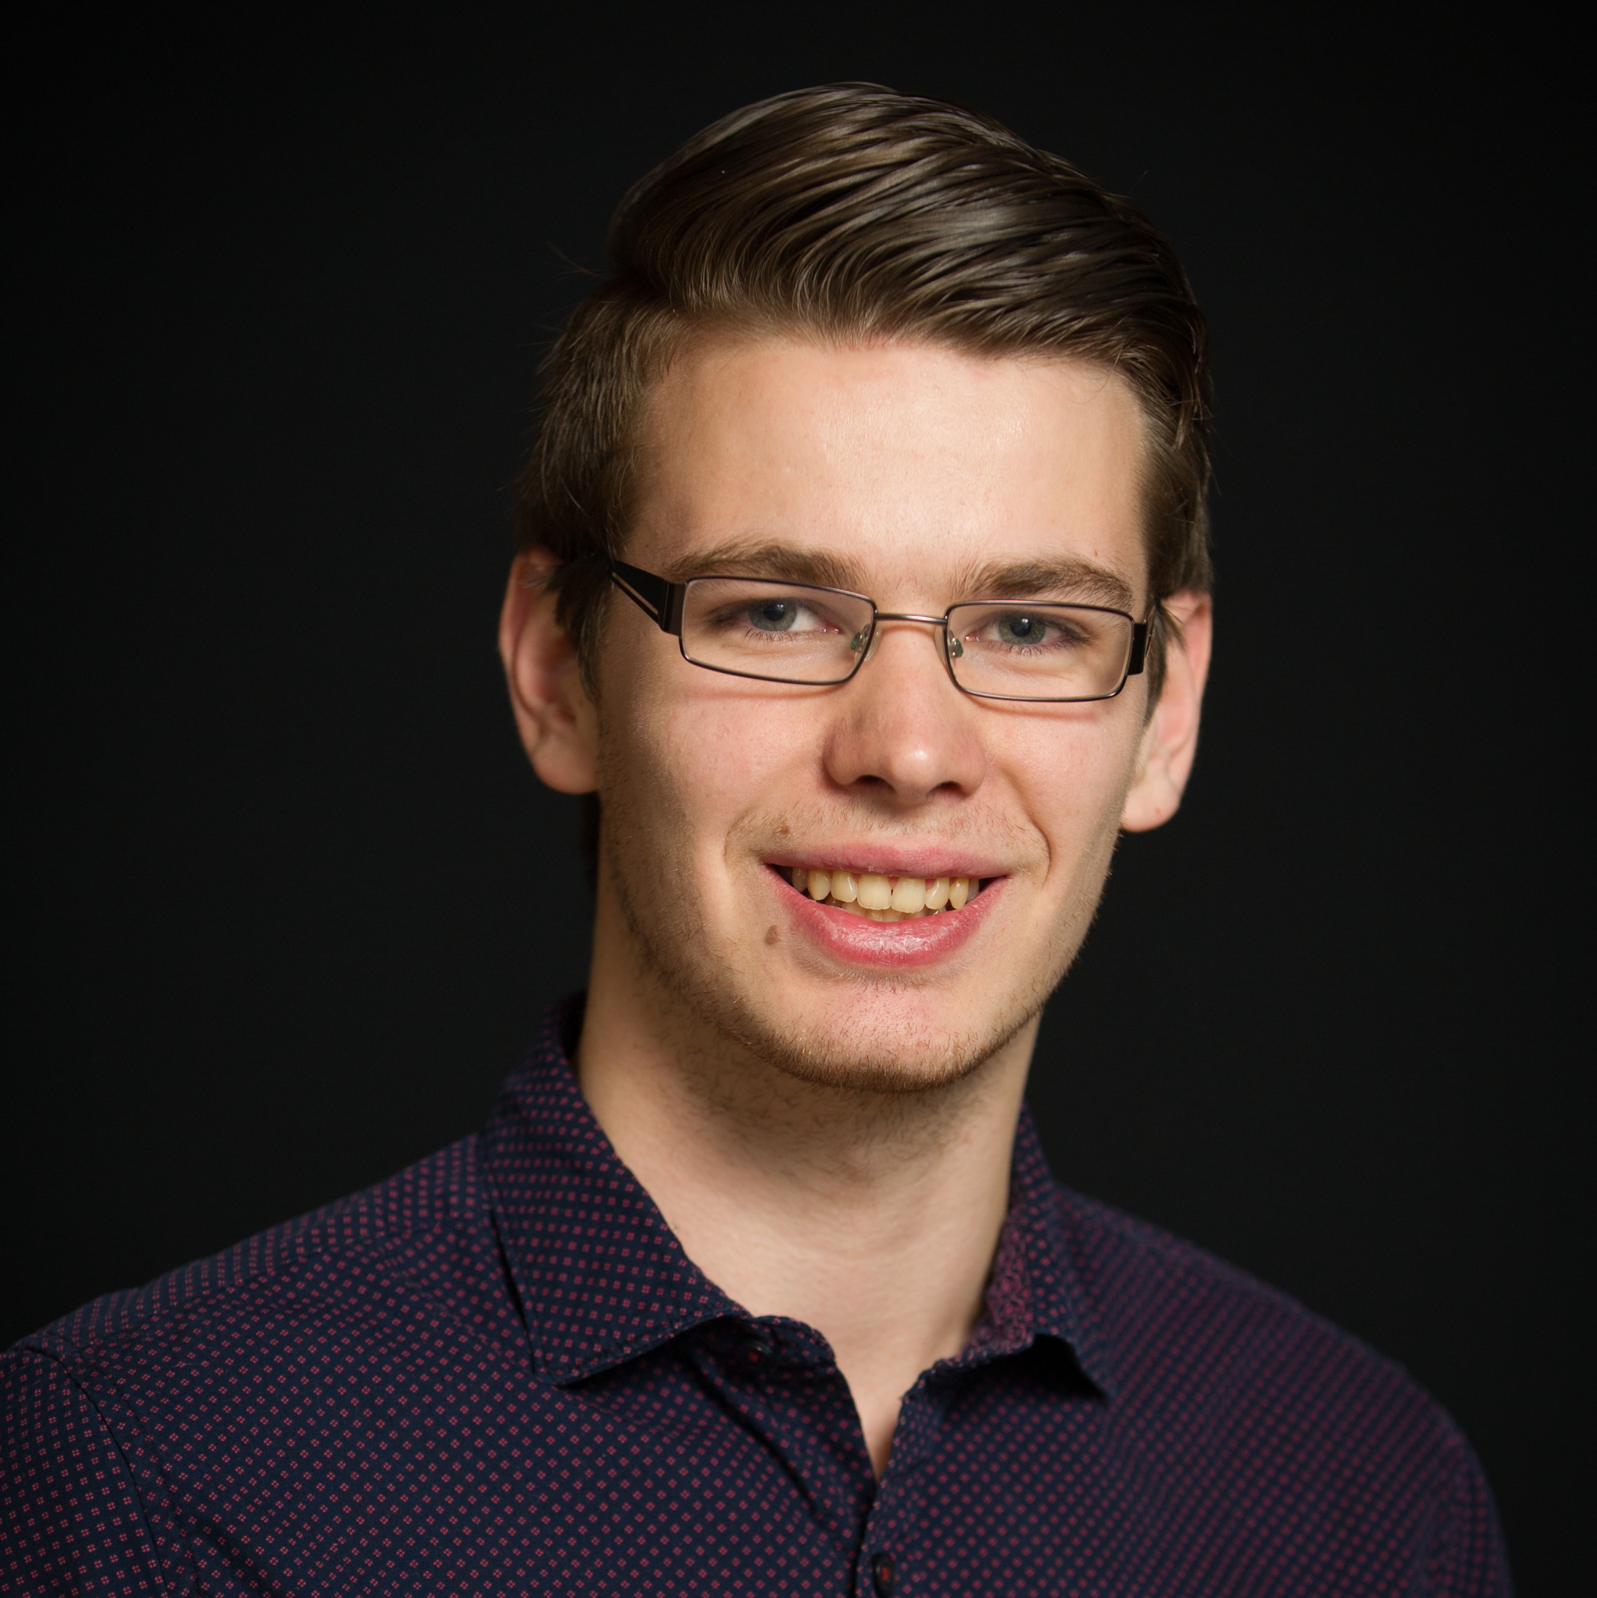 CO-OP Student of the year - Faculty of Engineering - Shawn Lamothe